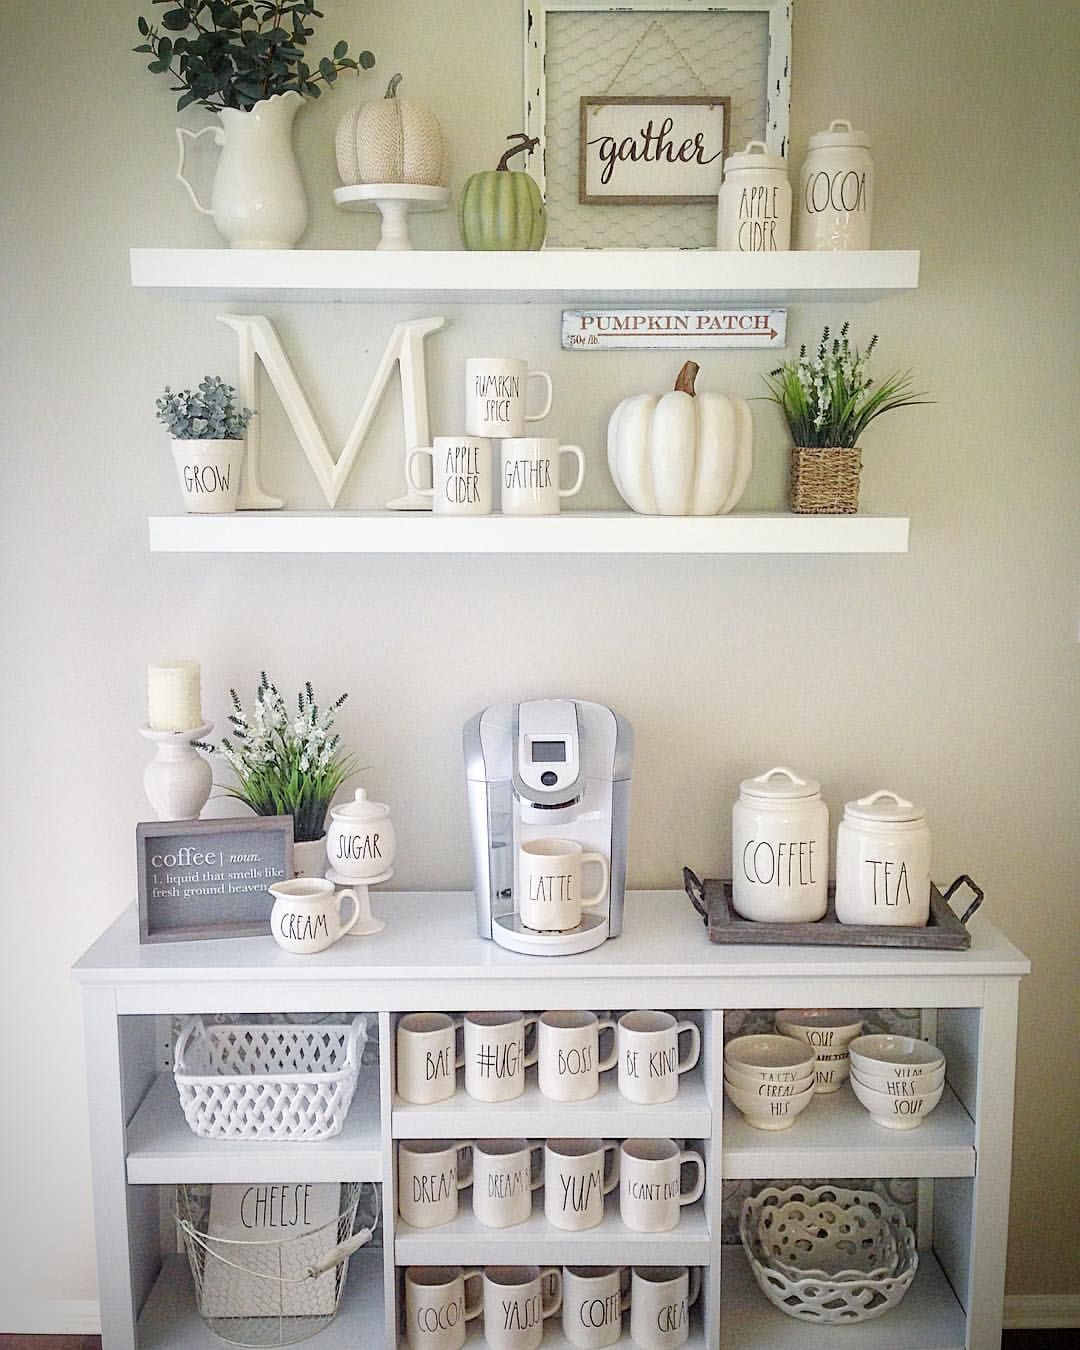 Diy Oil And Vinegar Shelf: Rae Dunn Display Adding Some Bakers Twine To My Rae Dunn For